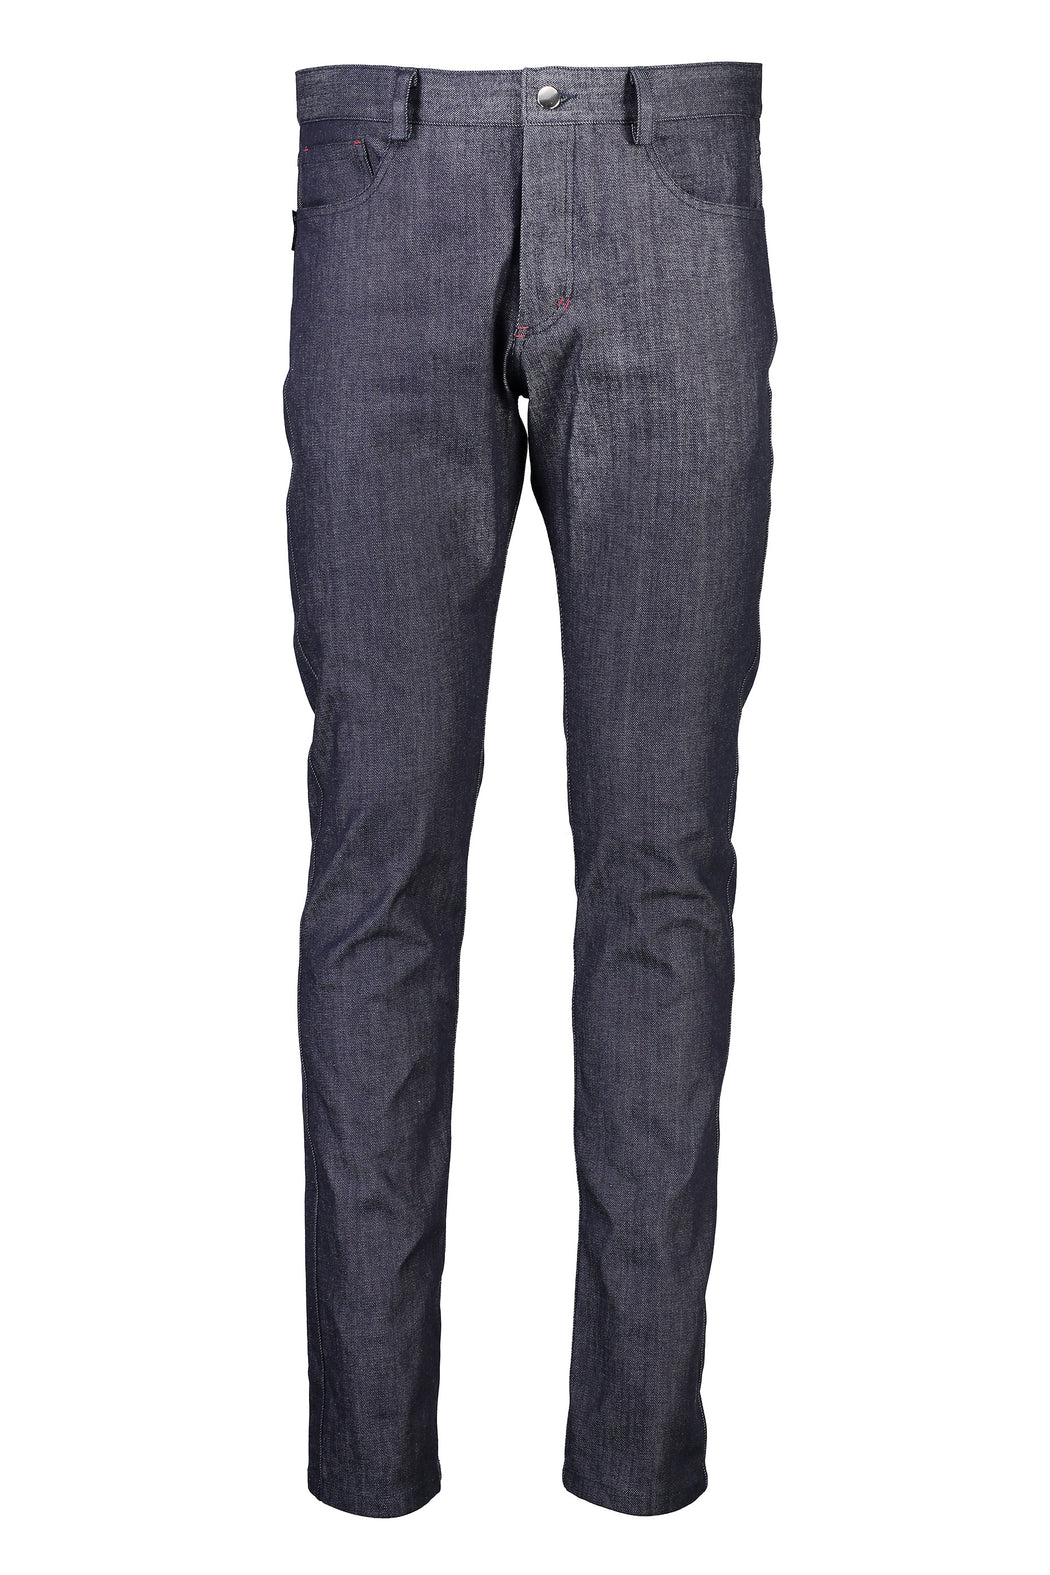 WORLDman 4407 Travolta Jean Navy Denim